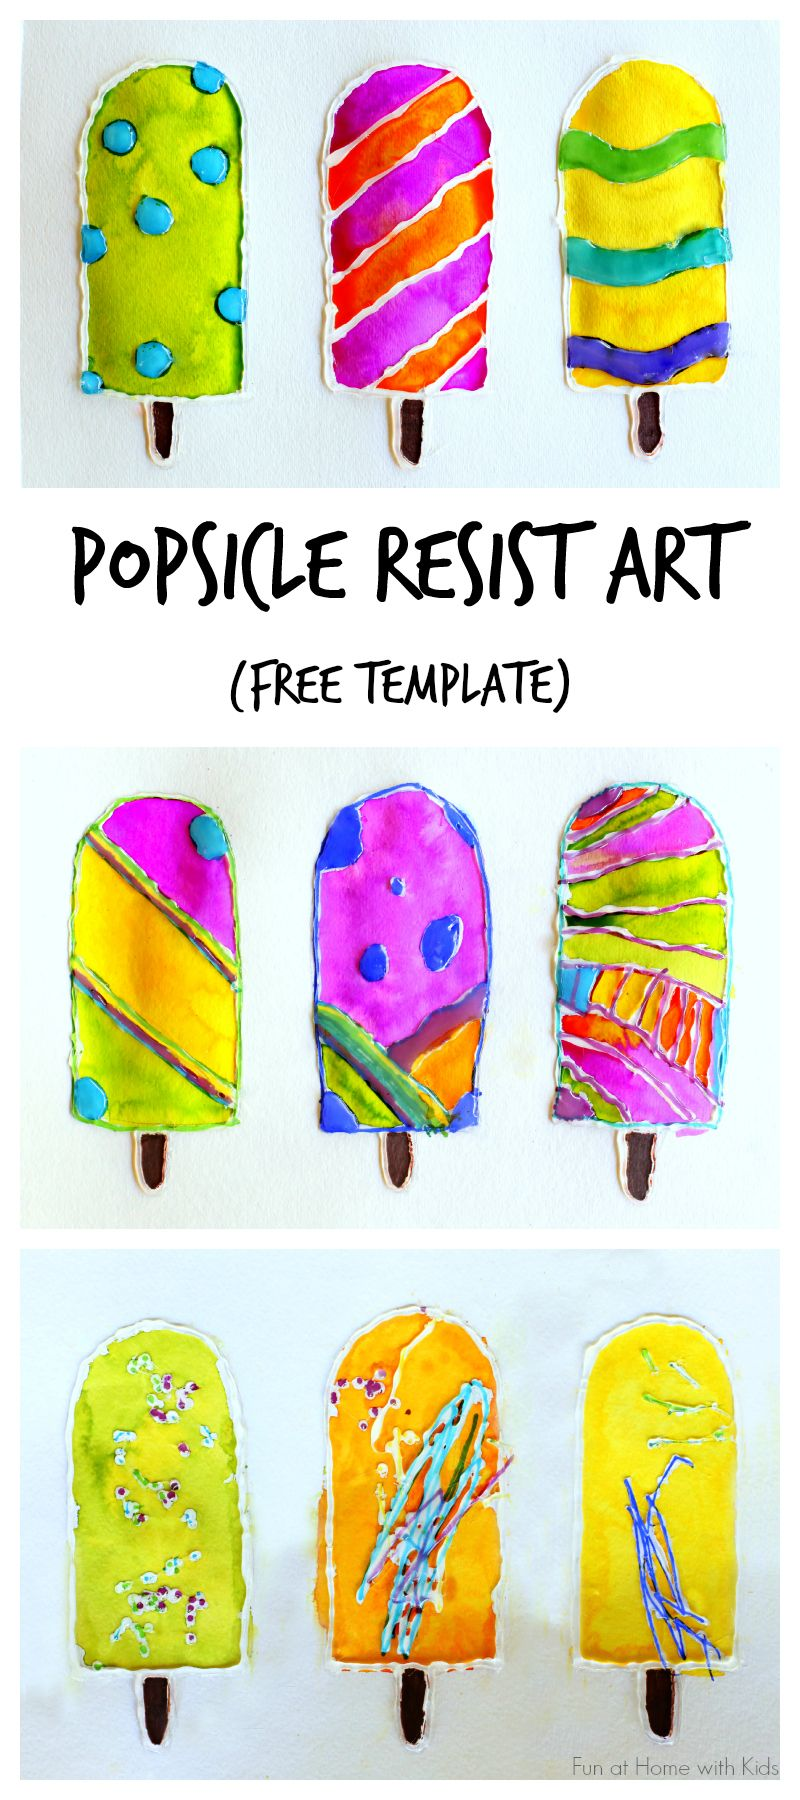 popsicle resist art with free popsicle template | new teachers